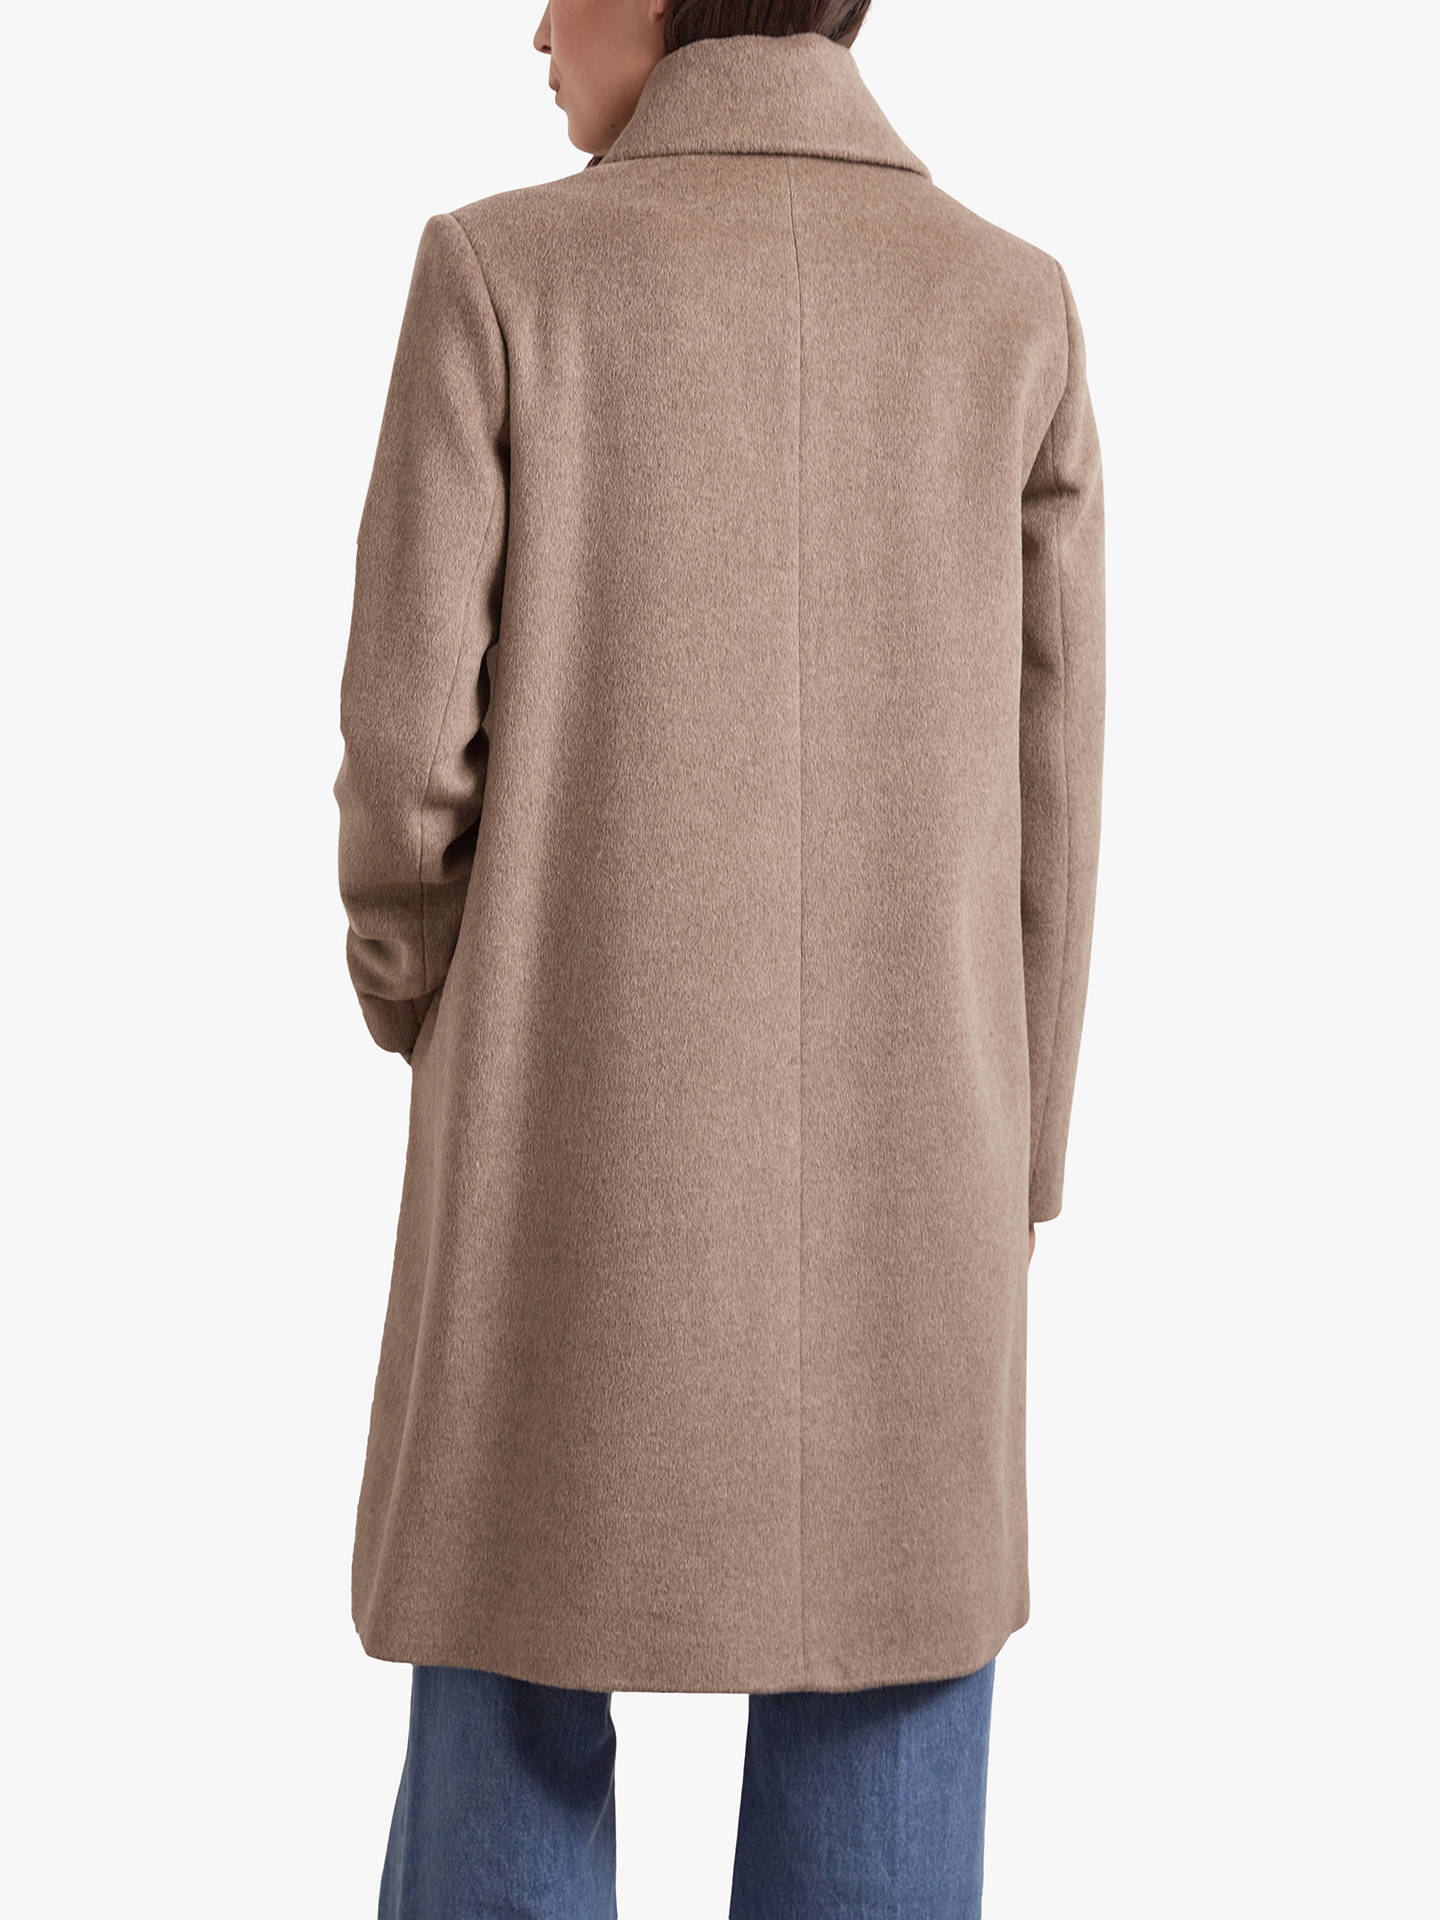 Buy Gerard Darel Serena Double Breasted Wool Coat, Camel, 6 Online at johnlewis.com